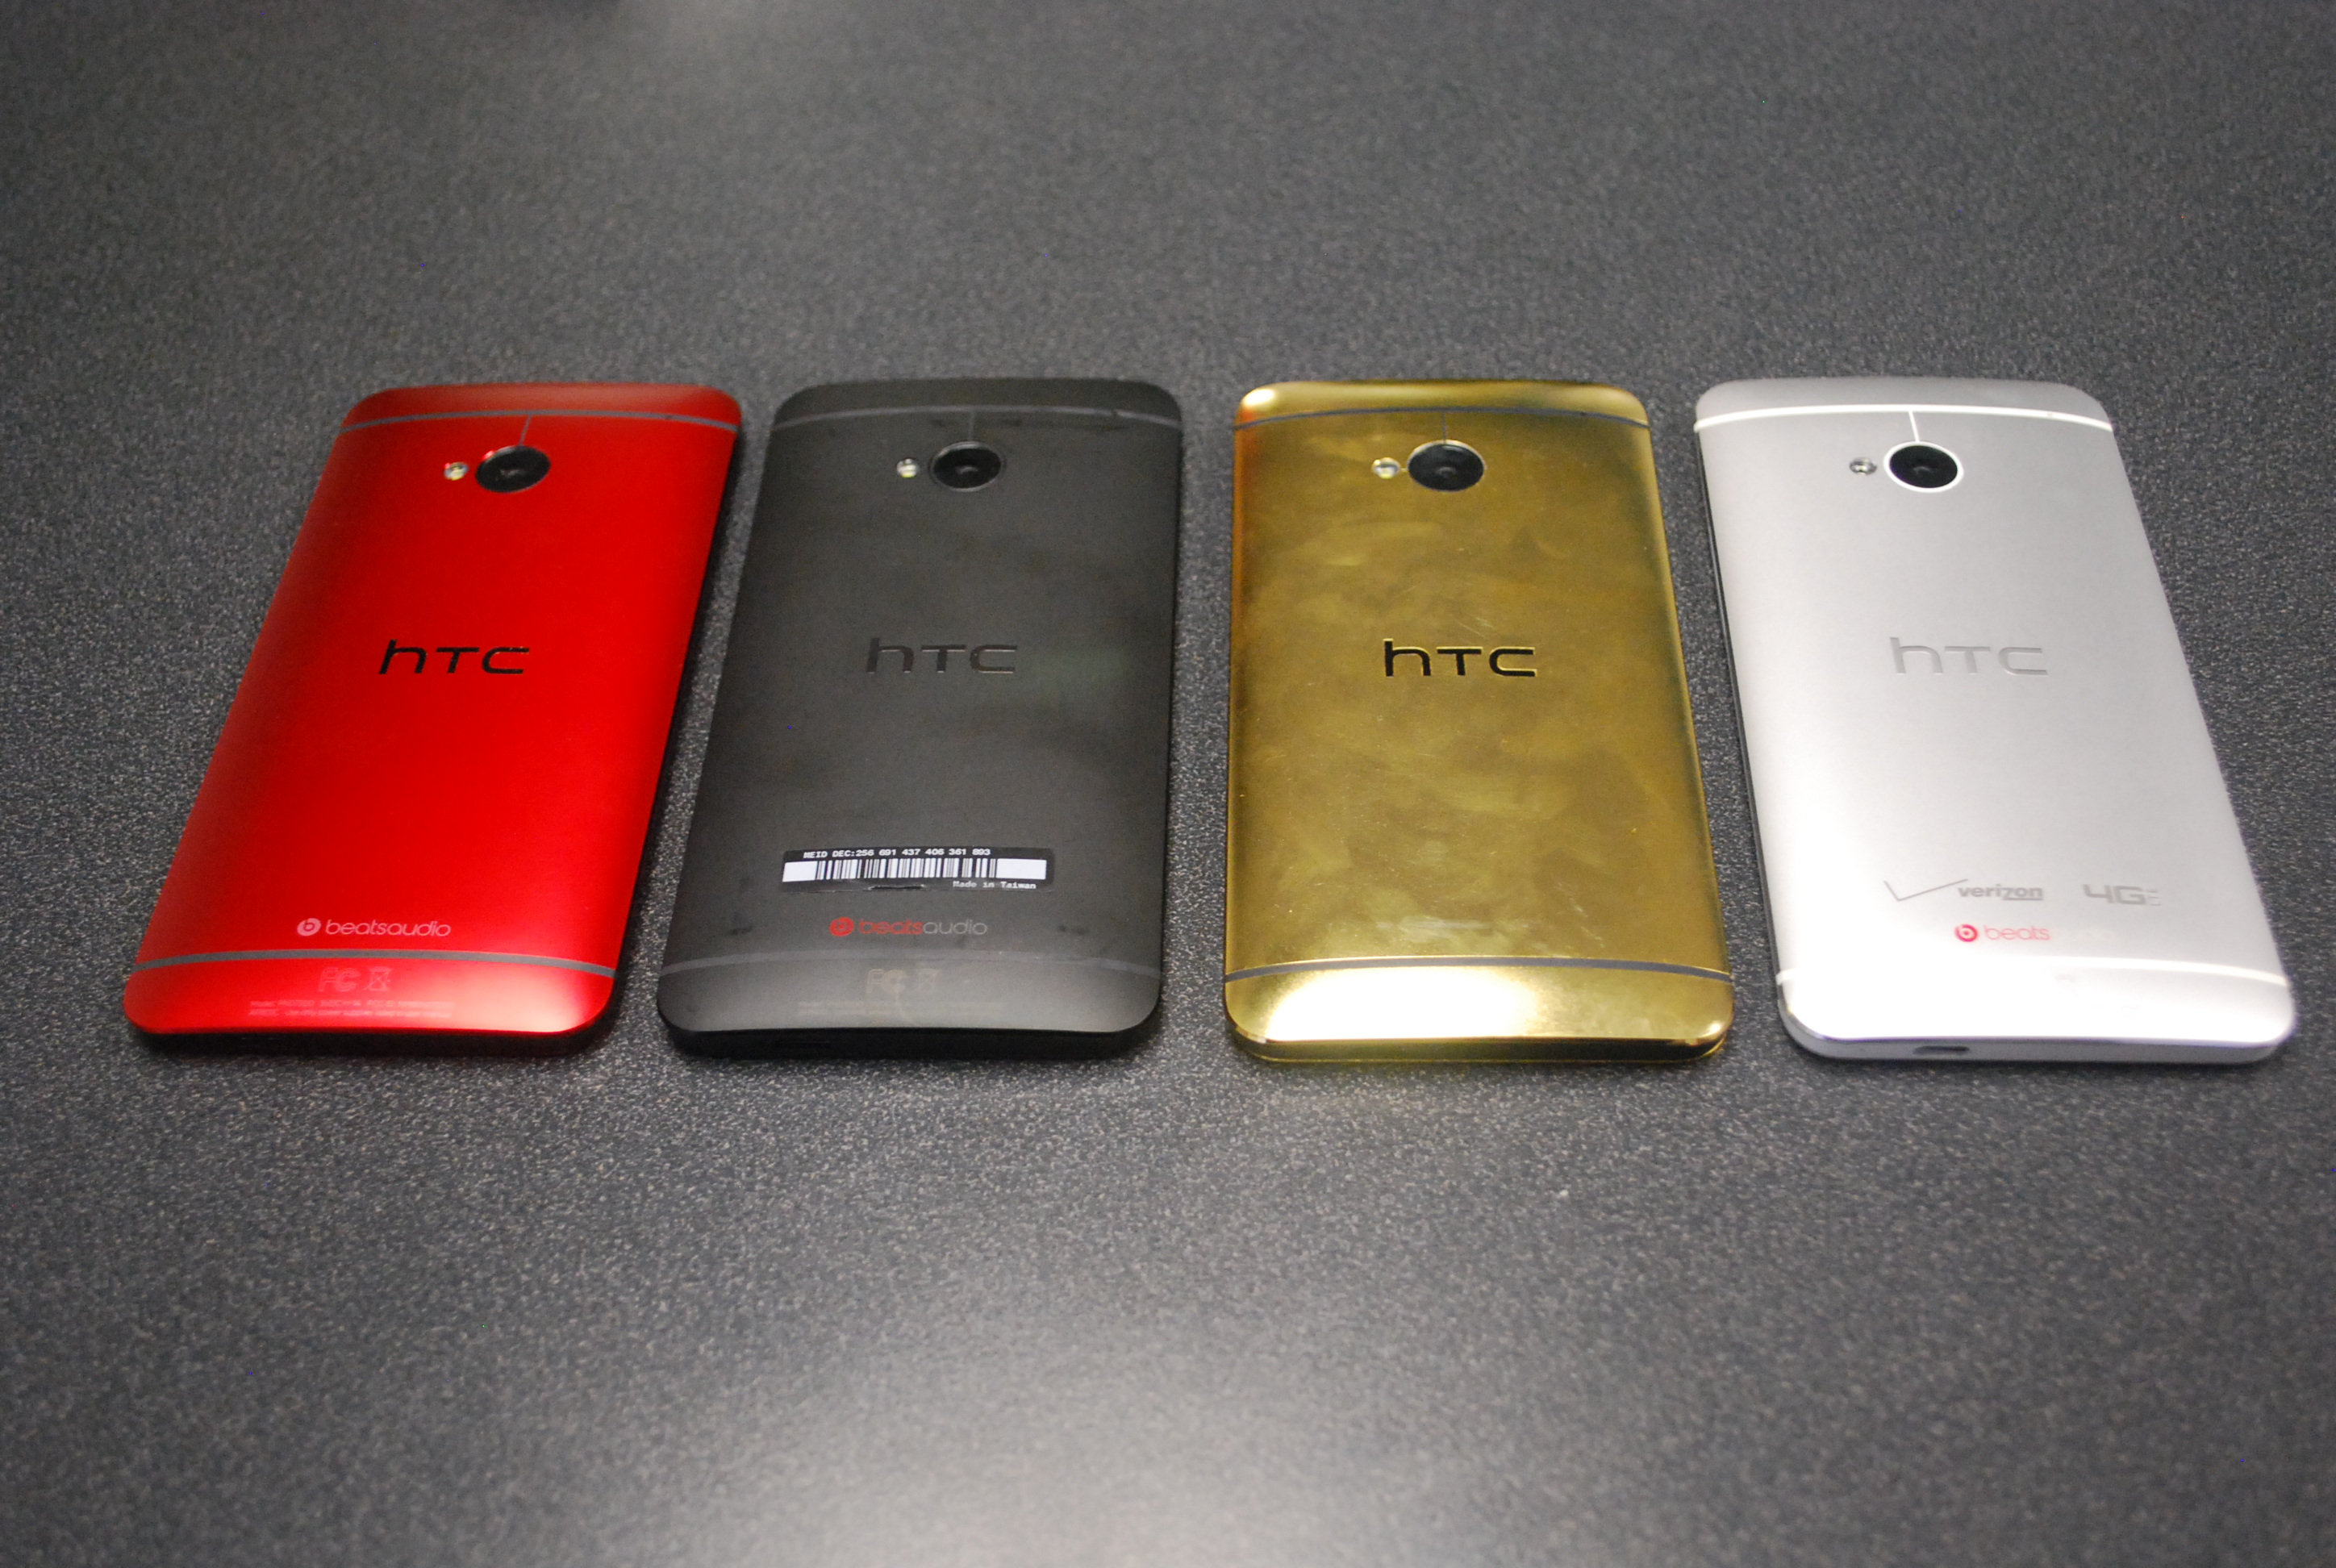 HTC One colors